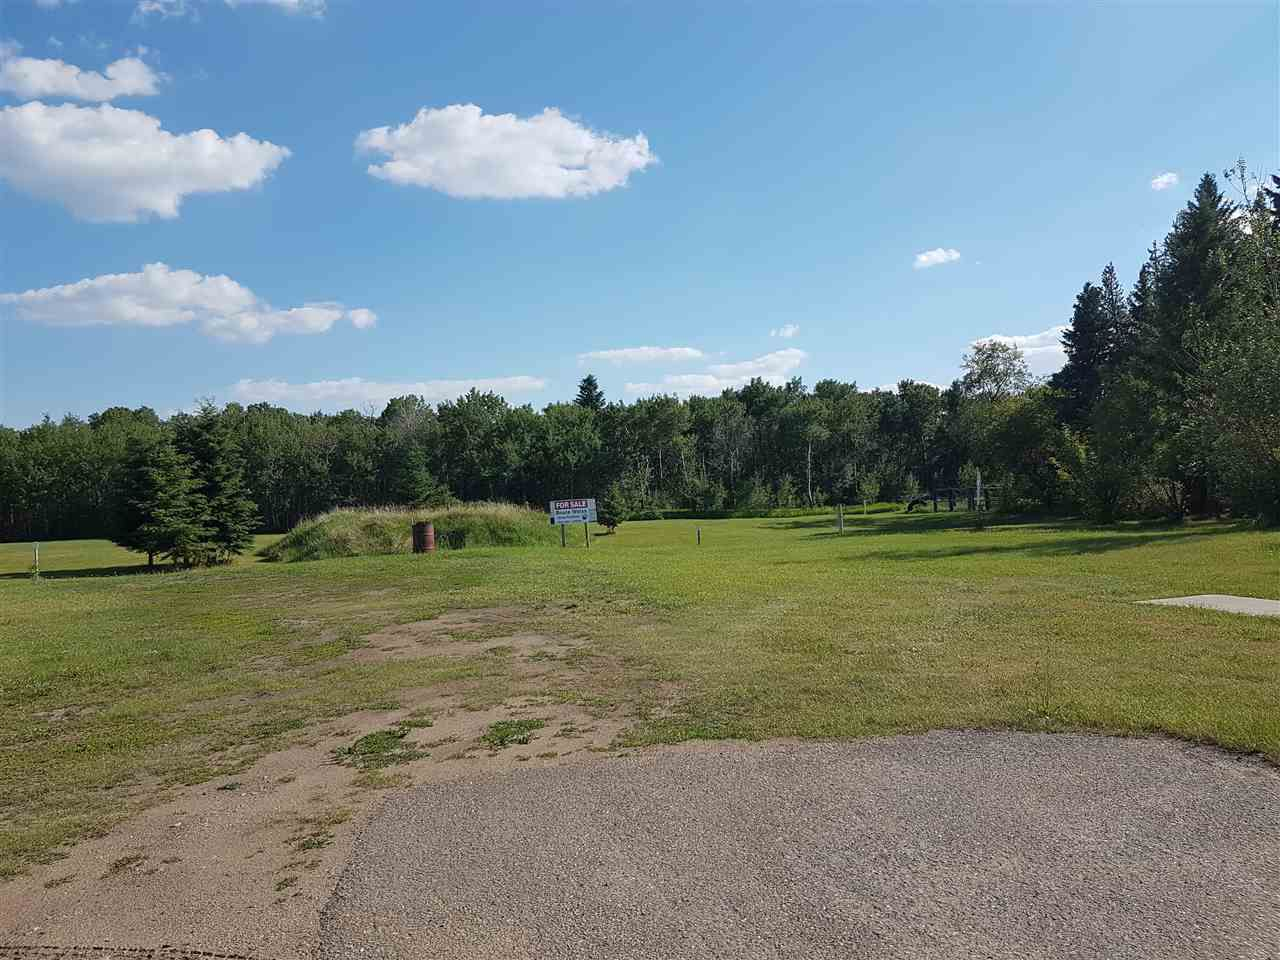 Main Photo: 4502 48 Street: Minburn Vacant Lot for sale : MLS®# E4116723